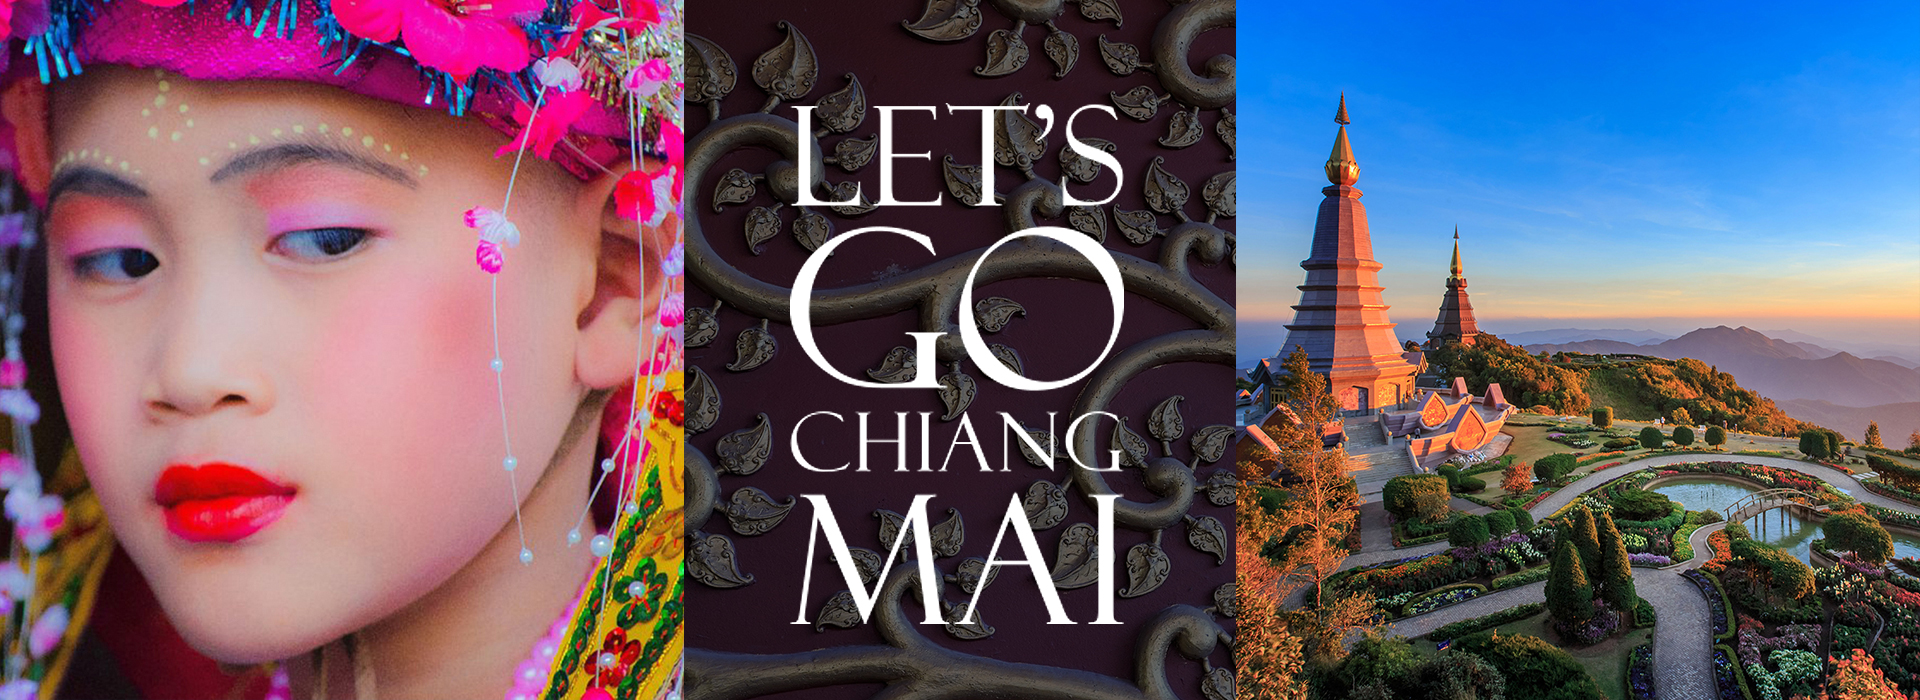 LET'S GO CHIANG MAI